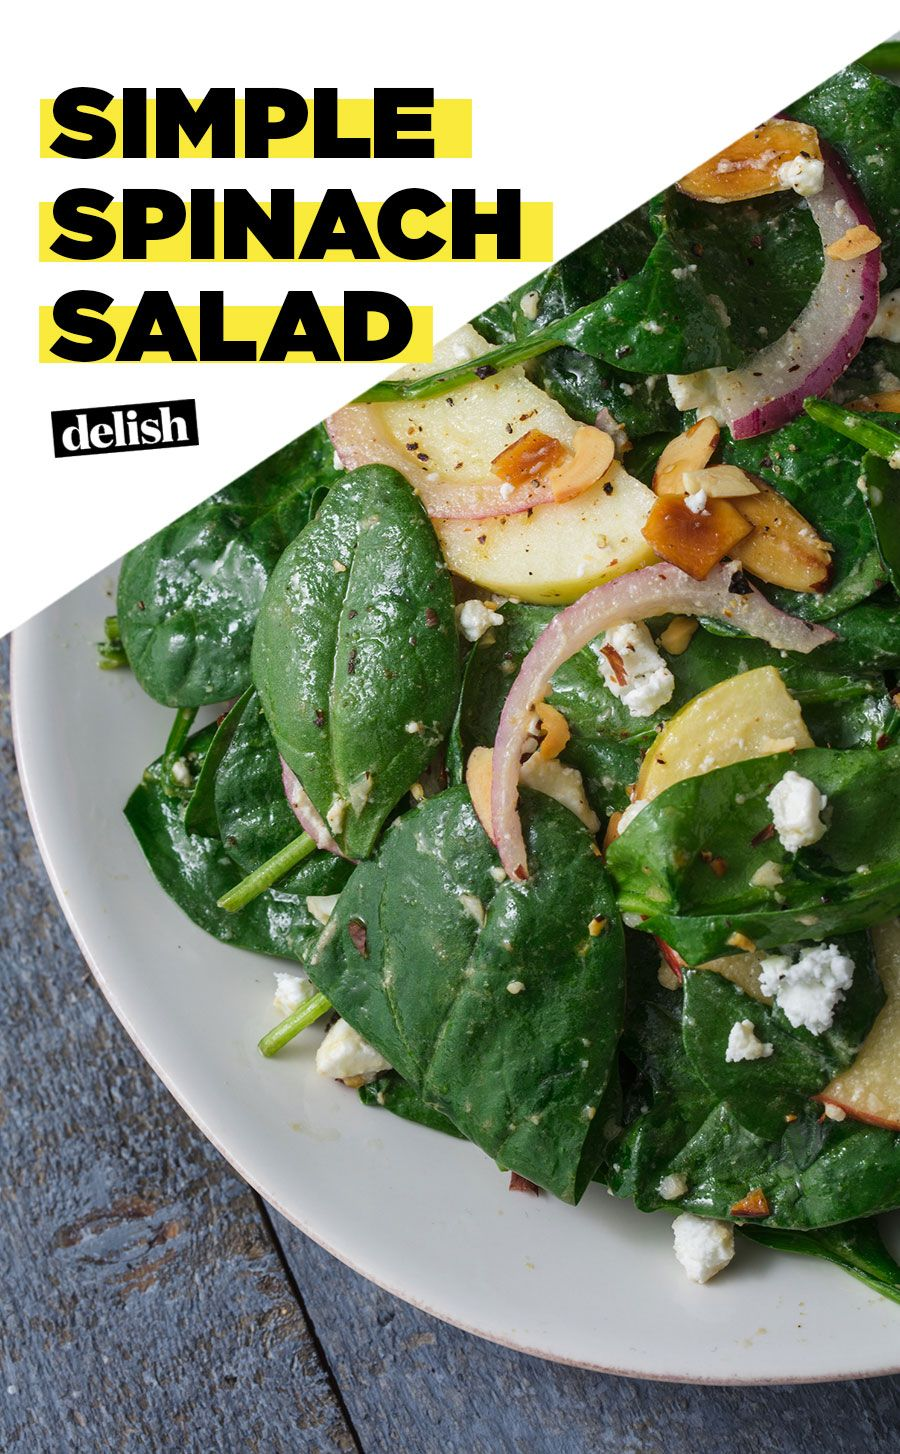 This Simple Spinach Salad Is The Perfect Side Recipe Spinach Salad Recipes Simple Spinach Salad Easy Salads